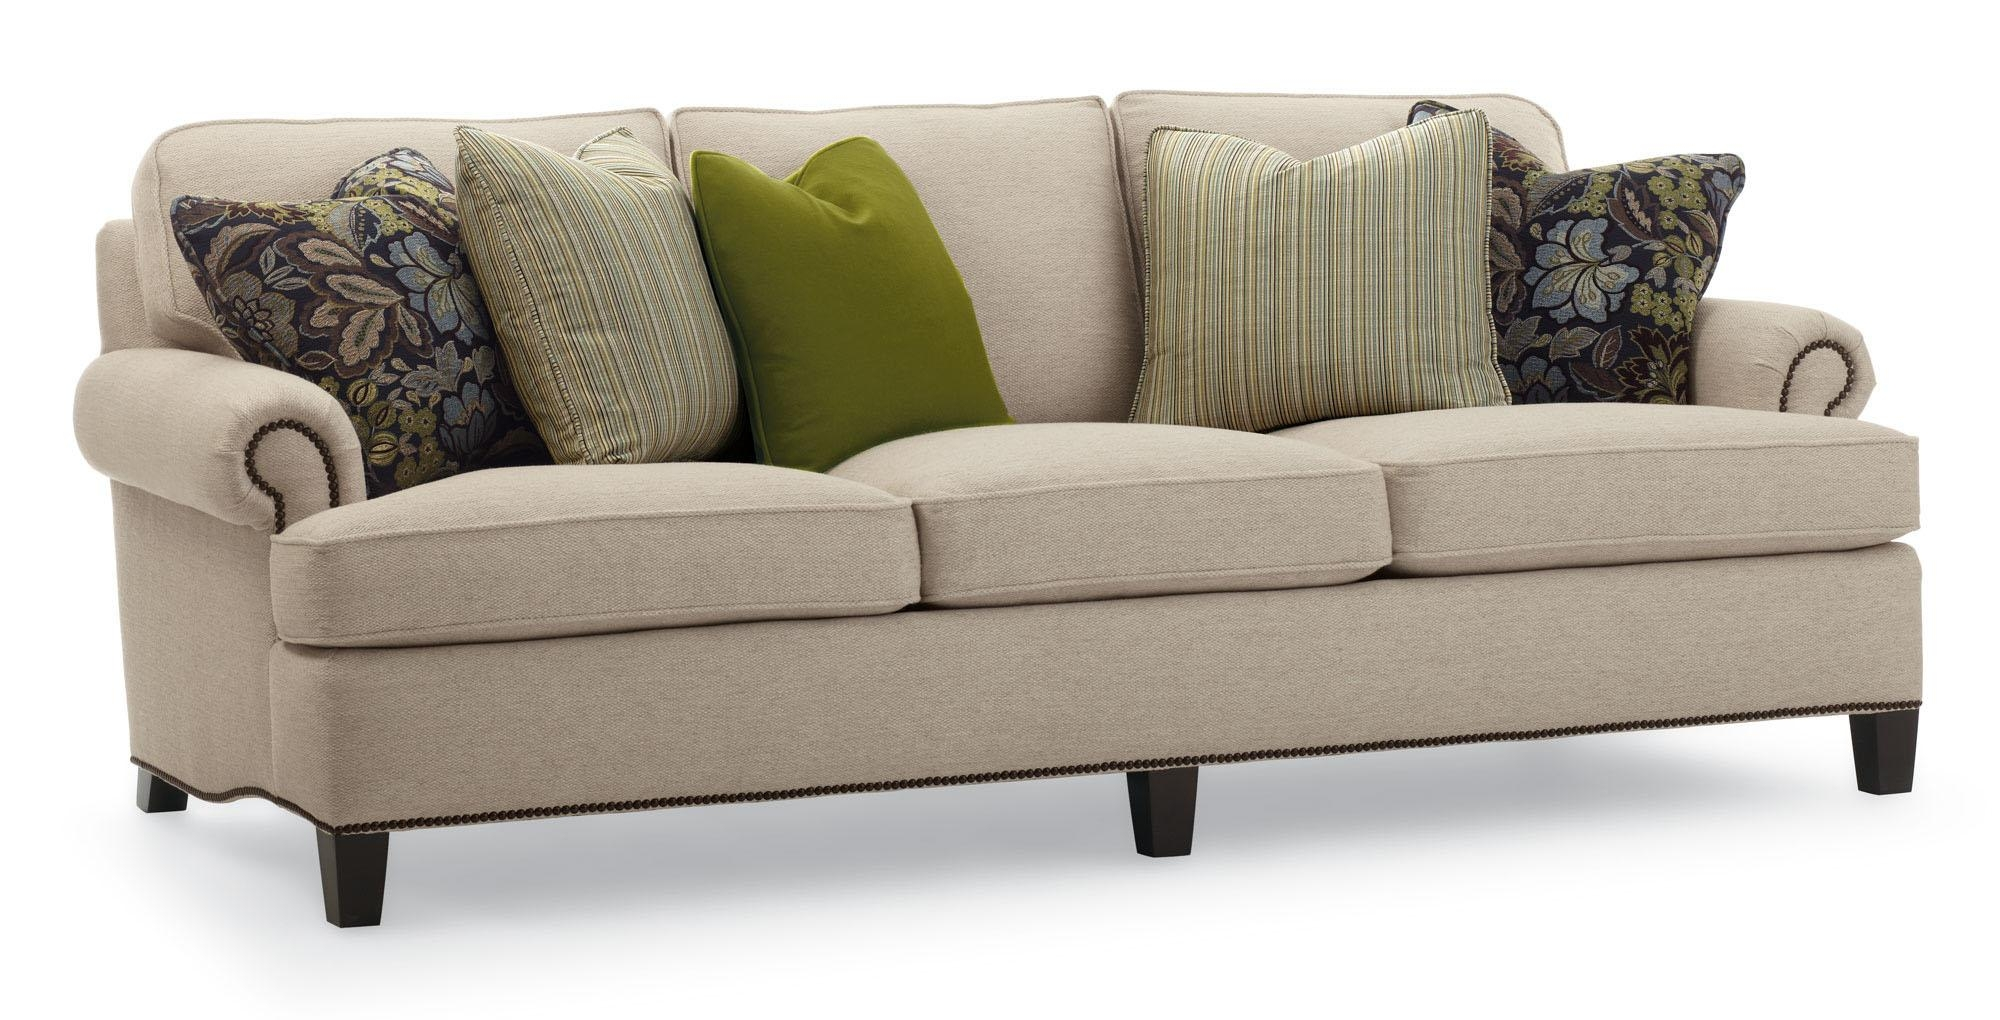 Best Of Bernhardt Brae Sofa | Cochabamba Throughout Bernhardt Brae Sofas (View 14 of 20)